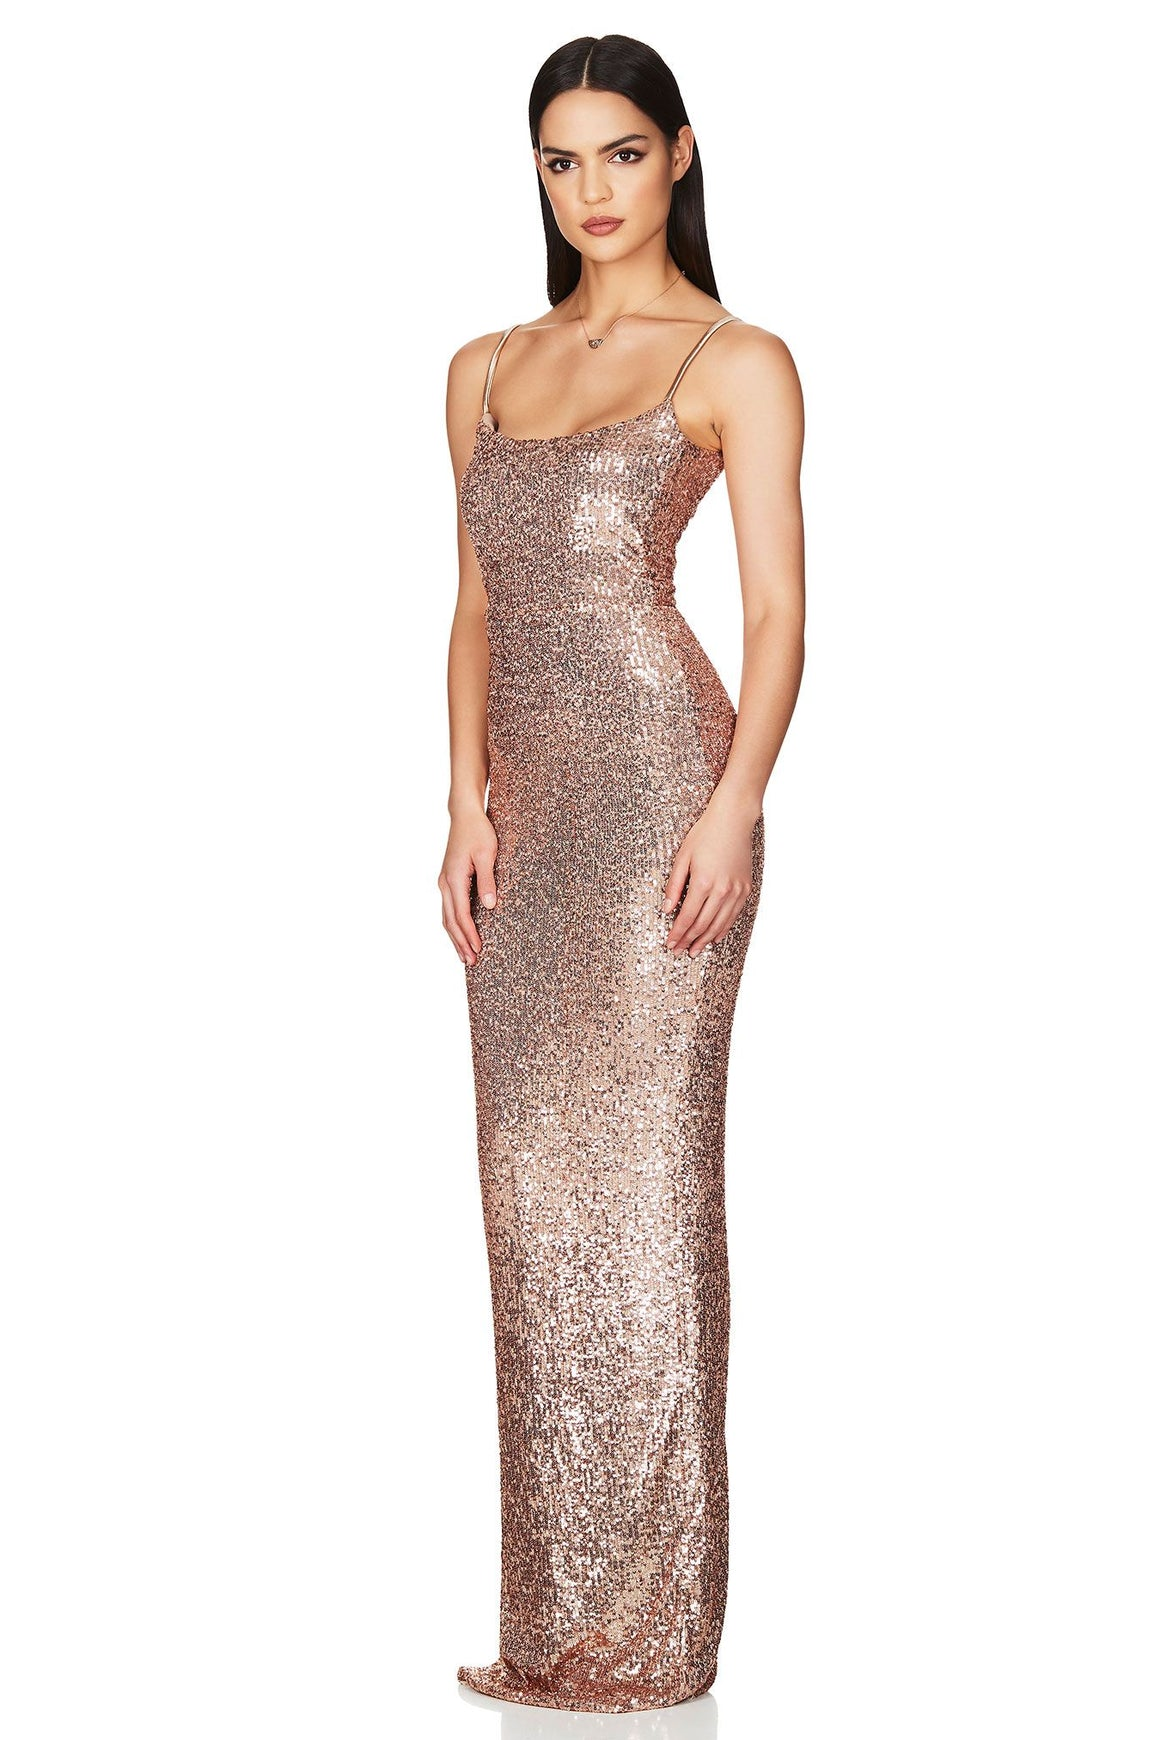 Lovers Gown - Rose Gold